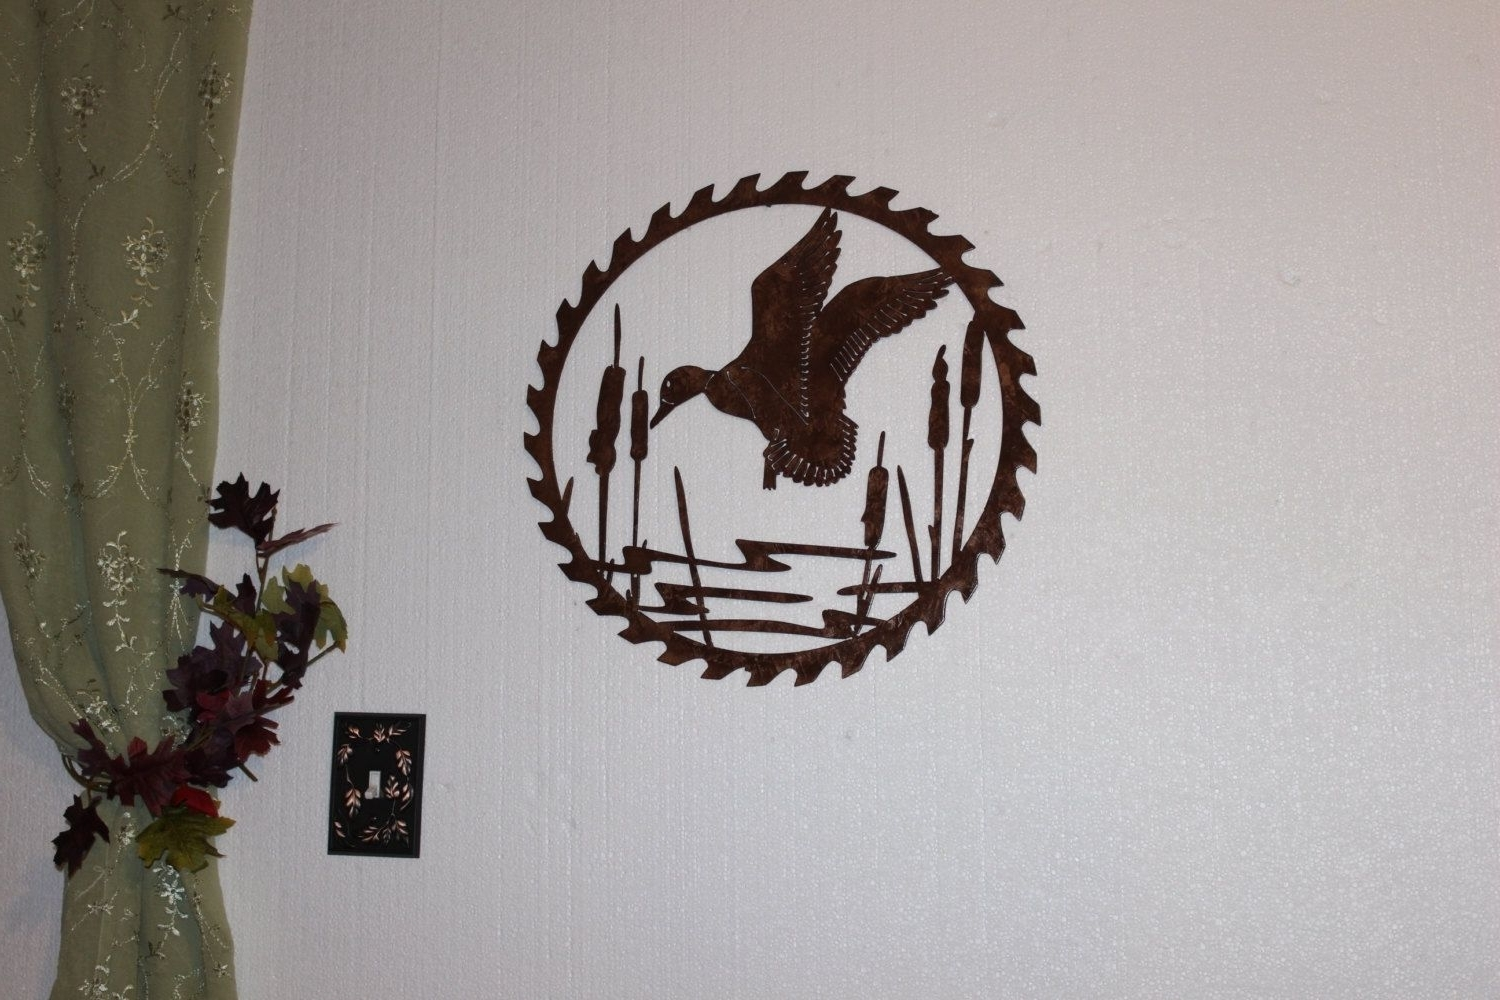 Hand Made Duck In Reeds On Sawblade Metal Wall Art Country Rustic Pertaining To Most Up To Date Country Metal Wall Art (View 5 of 15)